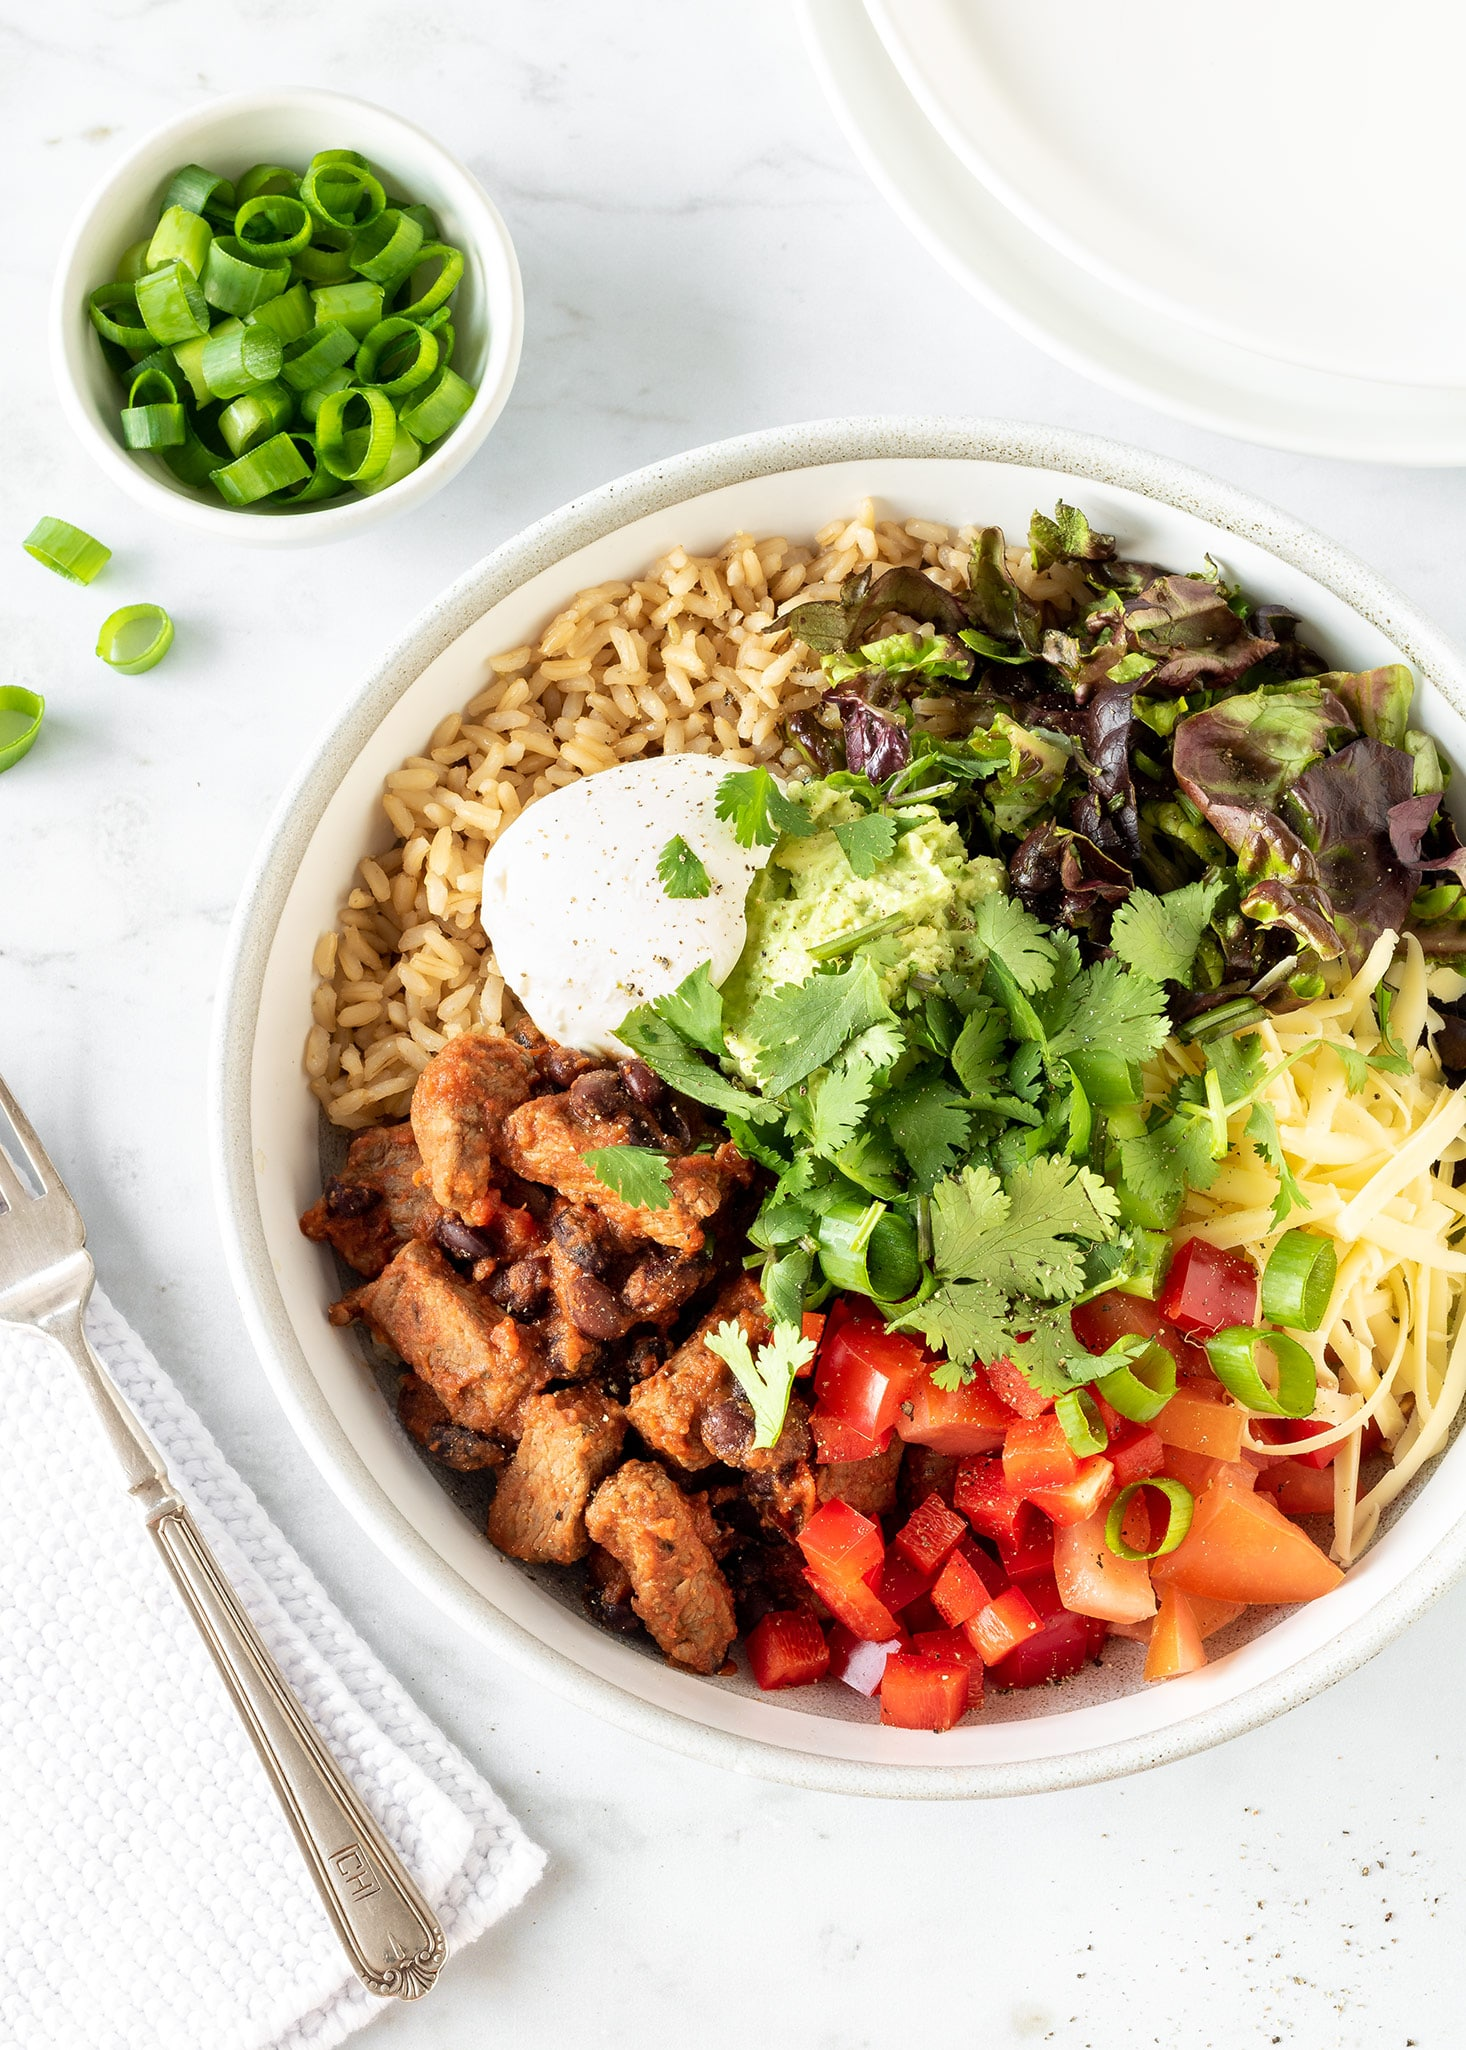 Steak burrito bowls with lots of salad.